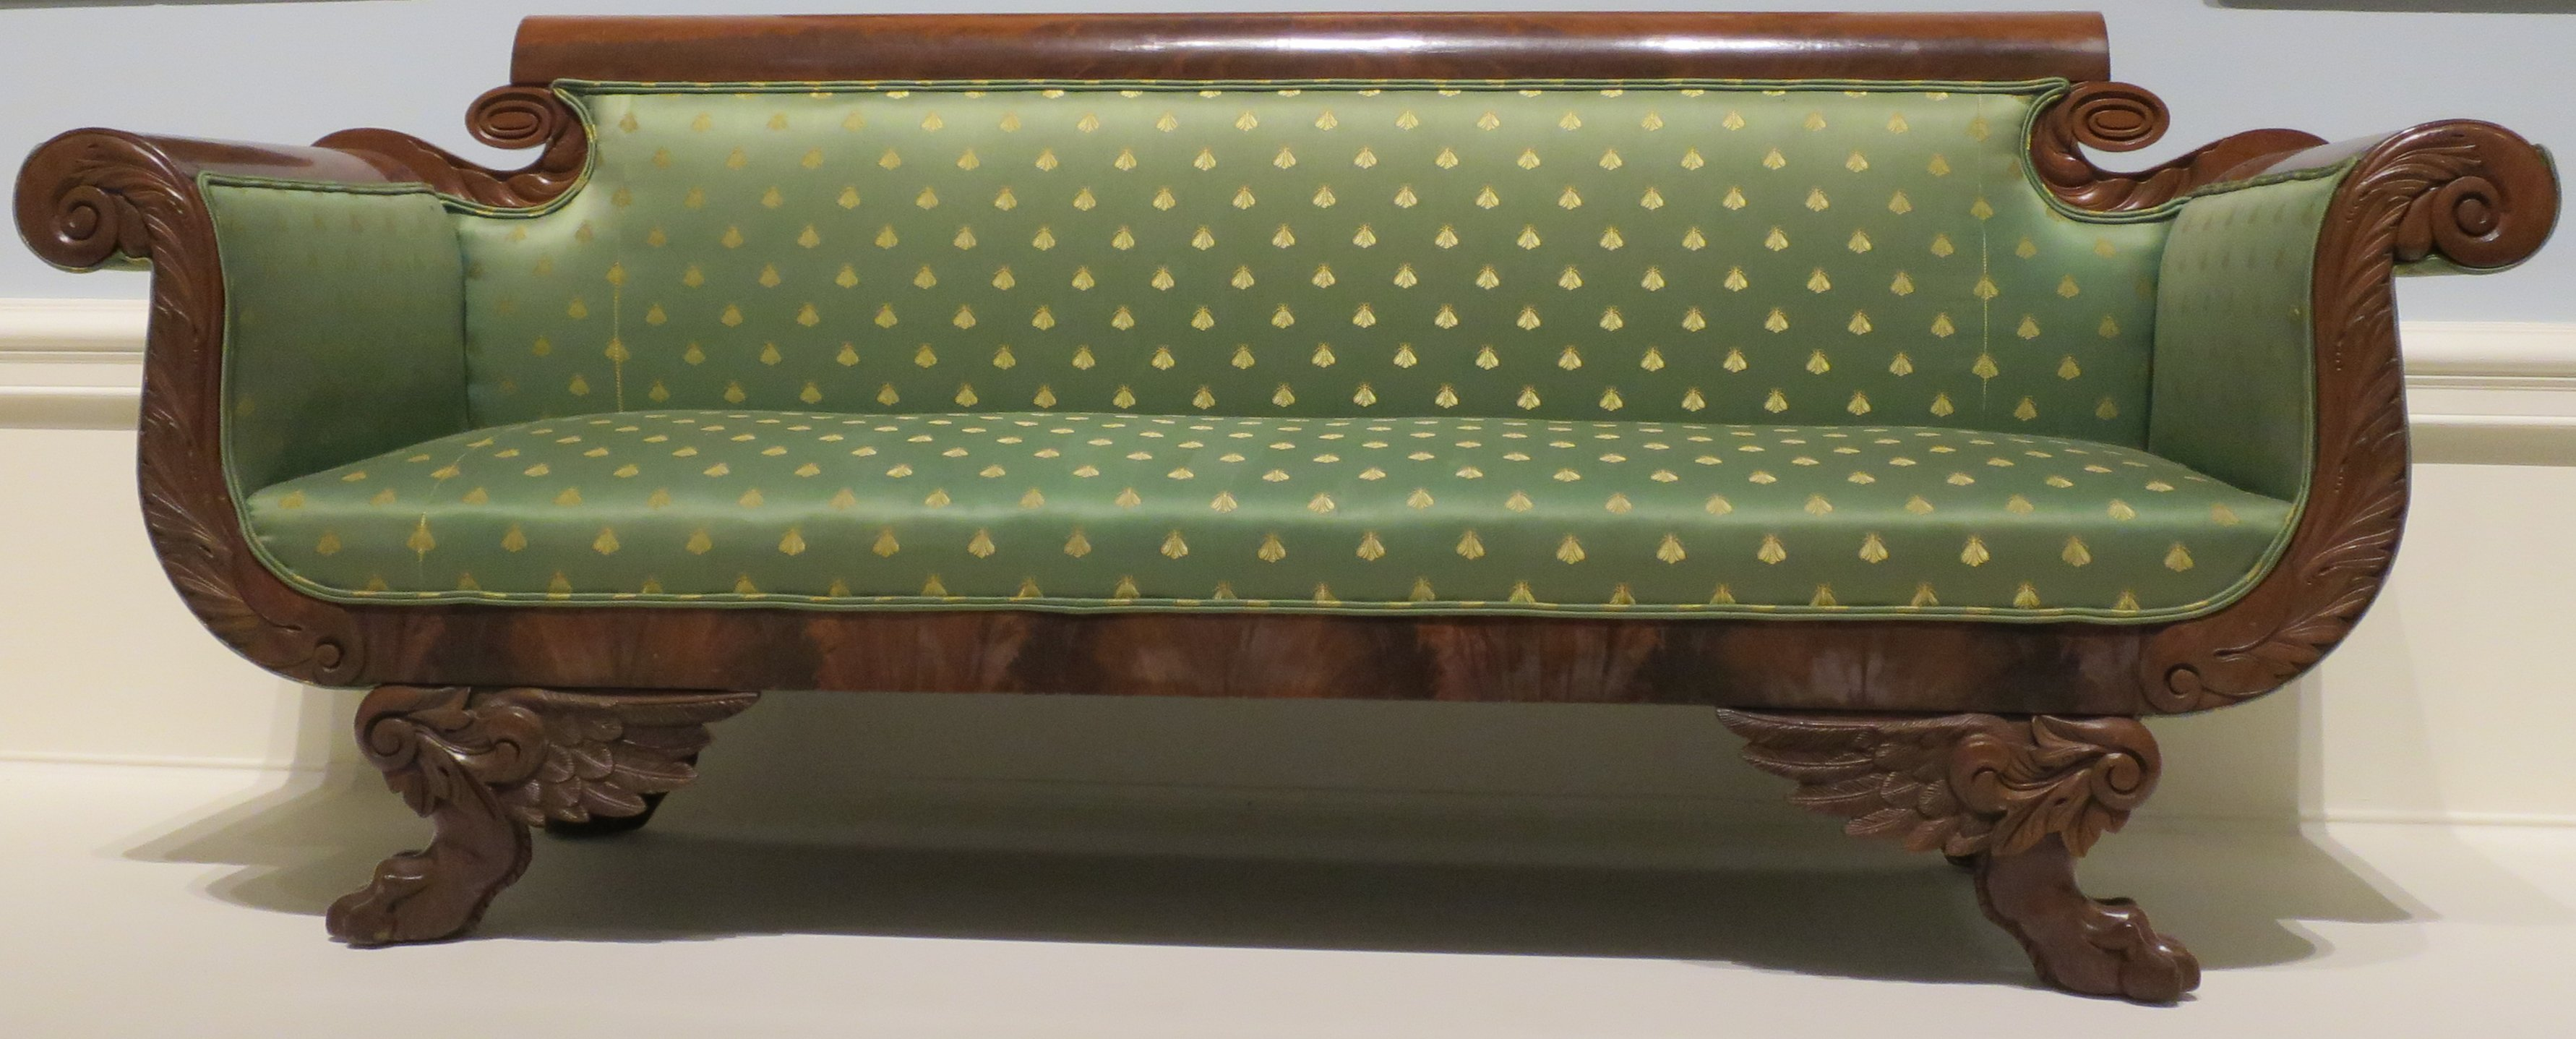 Beautiful File:American Empire Style Sofa, C. 1820 30, Wood, Mahogany